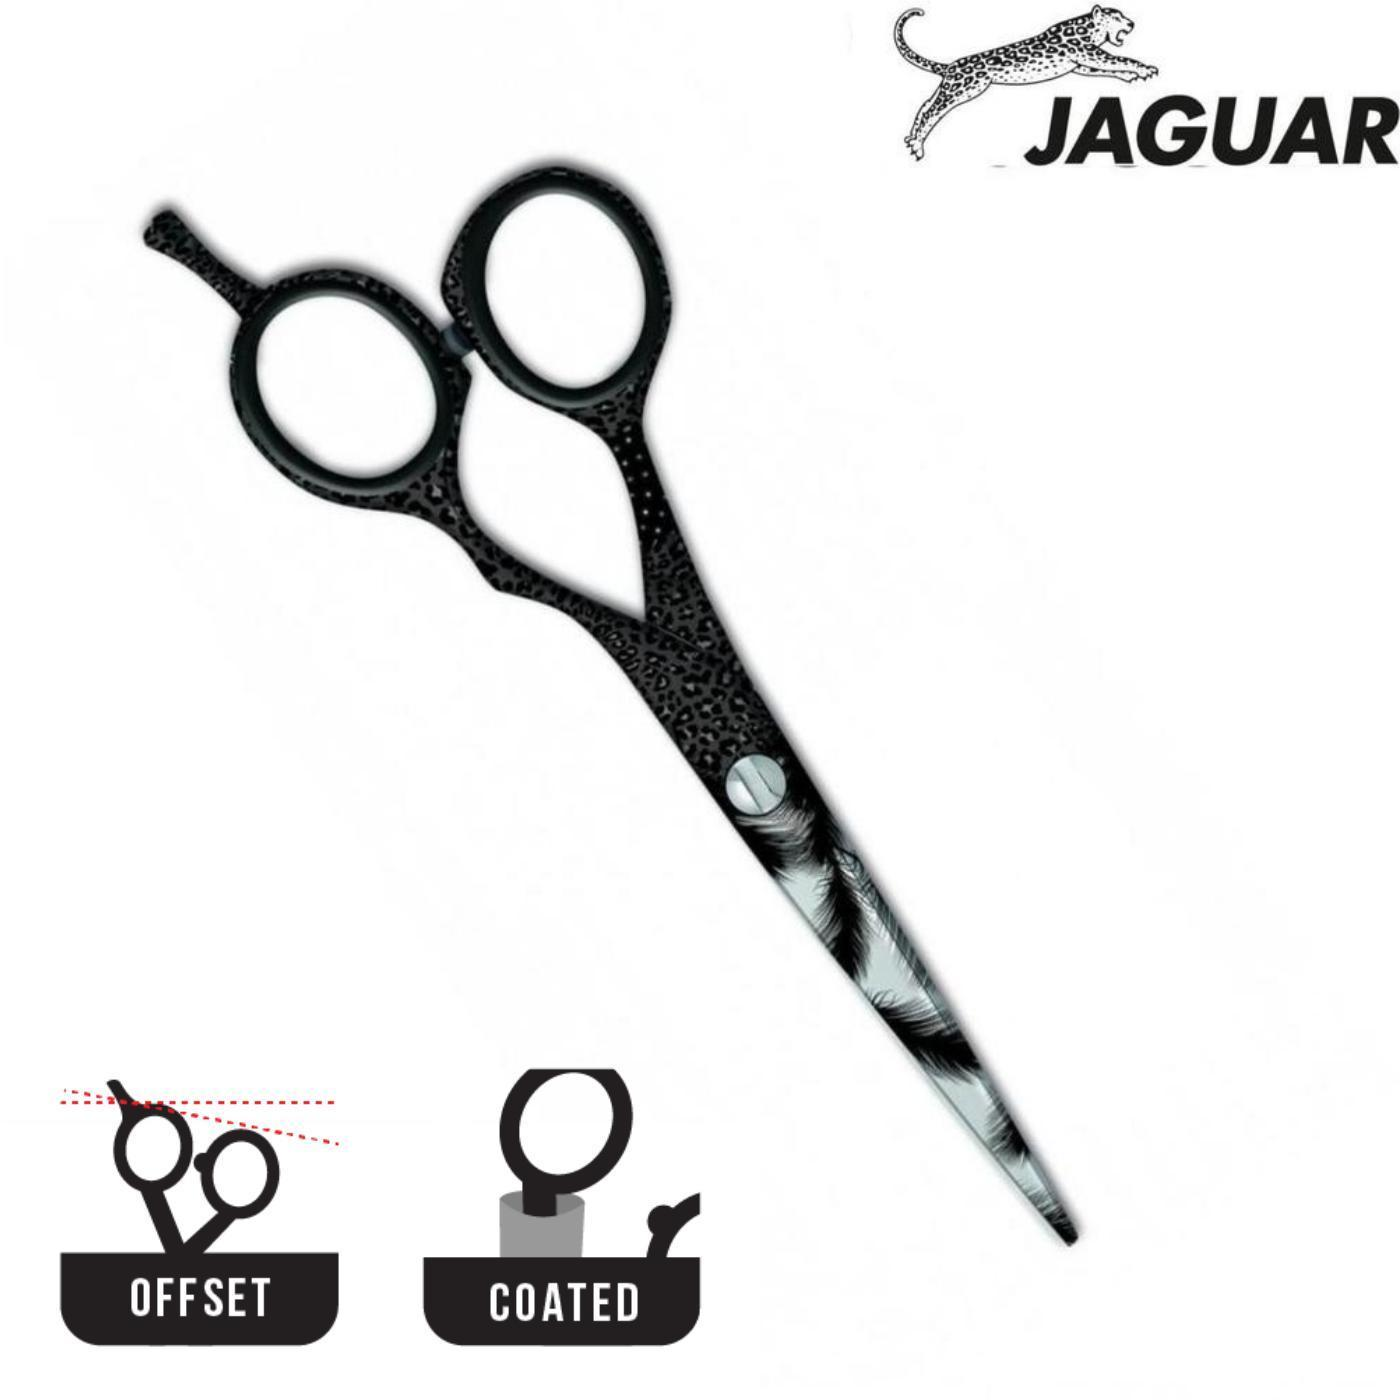 Jaguar Art BLACK PARADISE Scissors - Japan Scissors